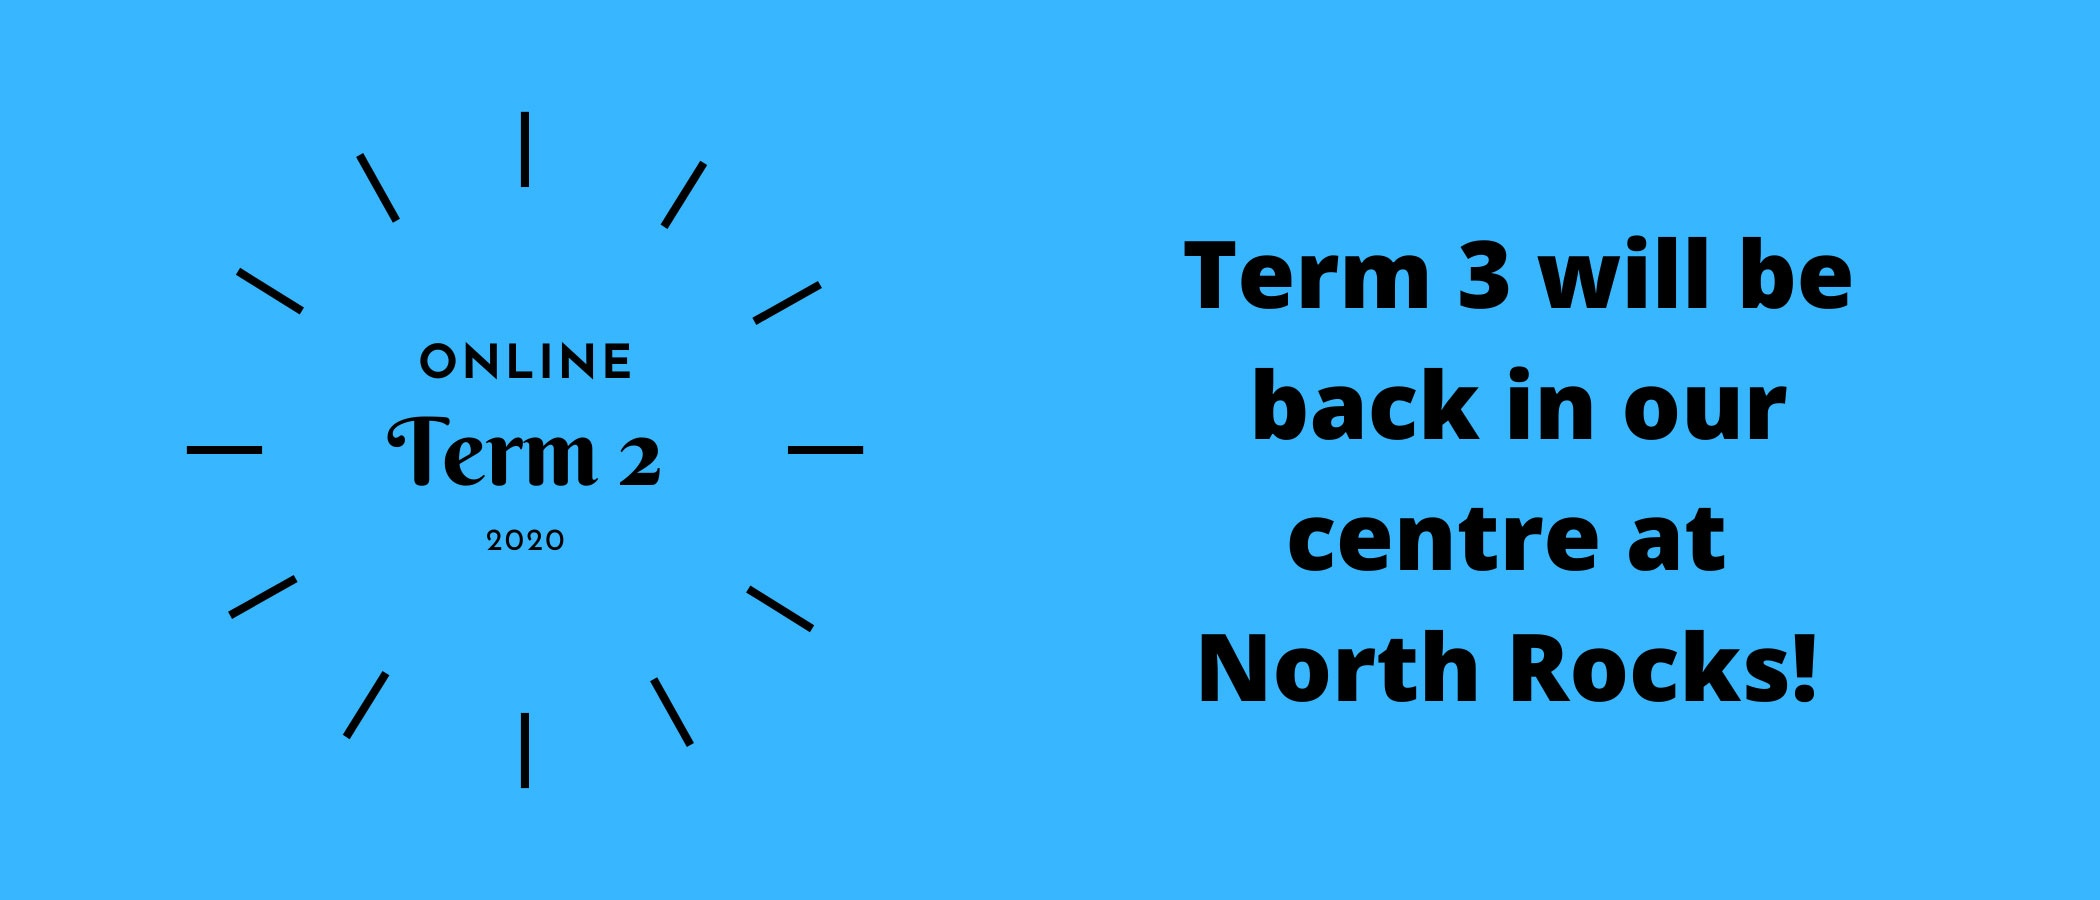 Term 3 will be back in our centre at North Rocks